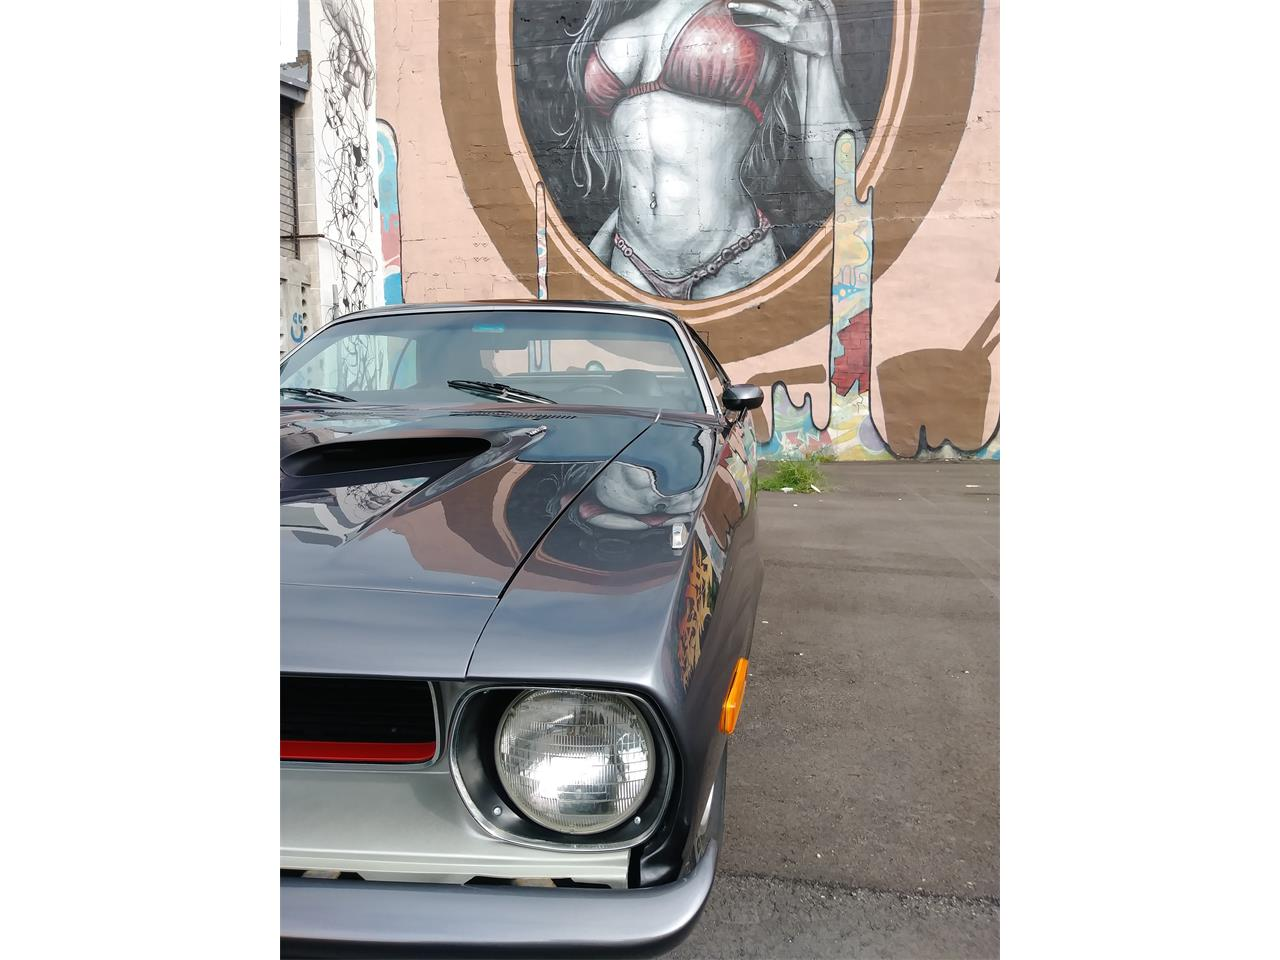 Large Picture of Classic '73 Plymouth Barracuda located in Florida - $43,000.00 Offered by a Private Seller - PUNY